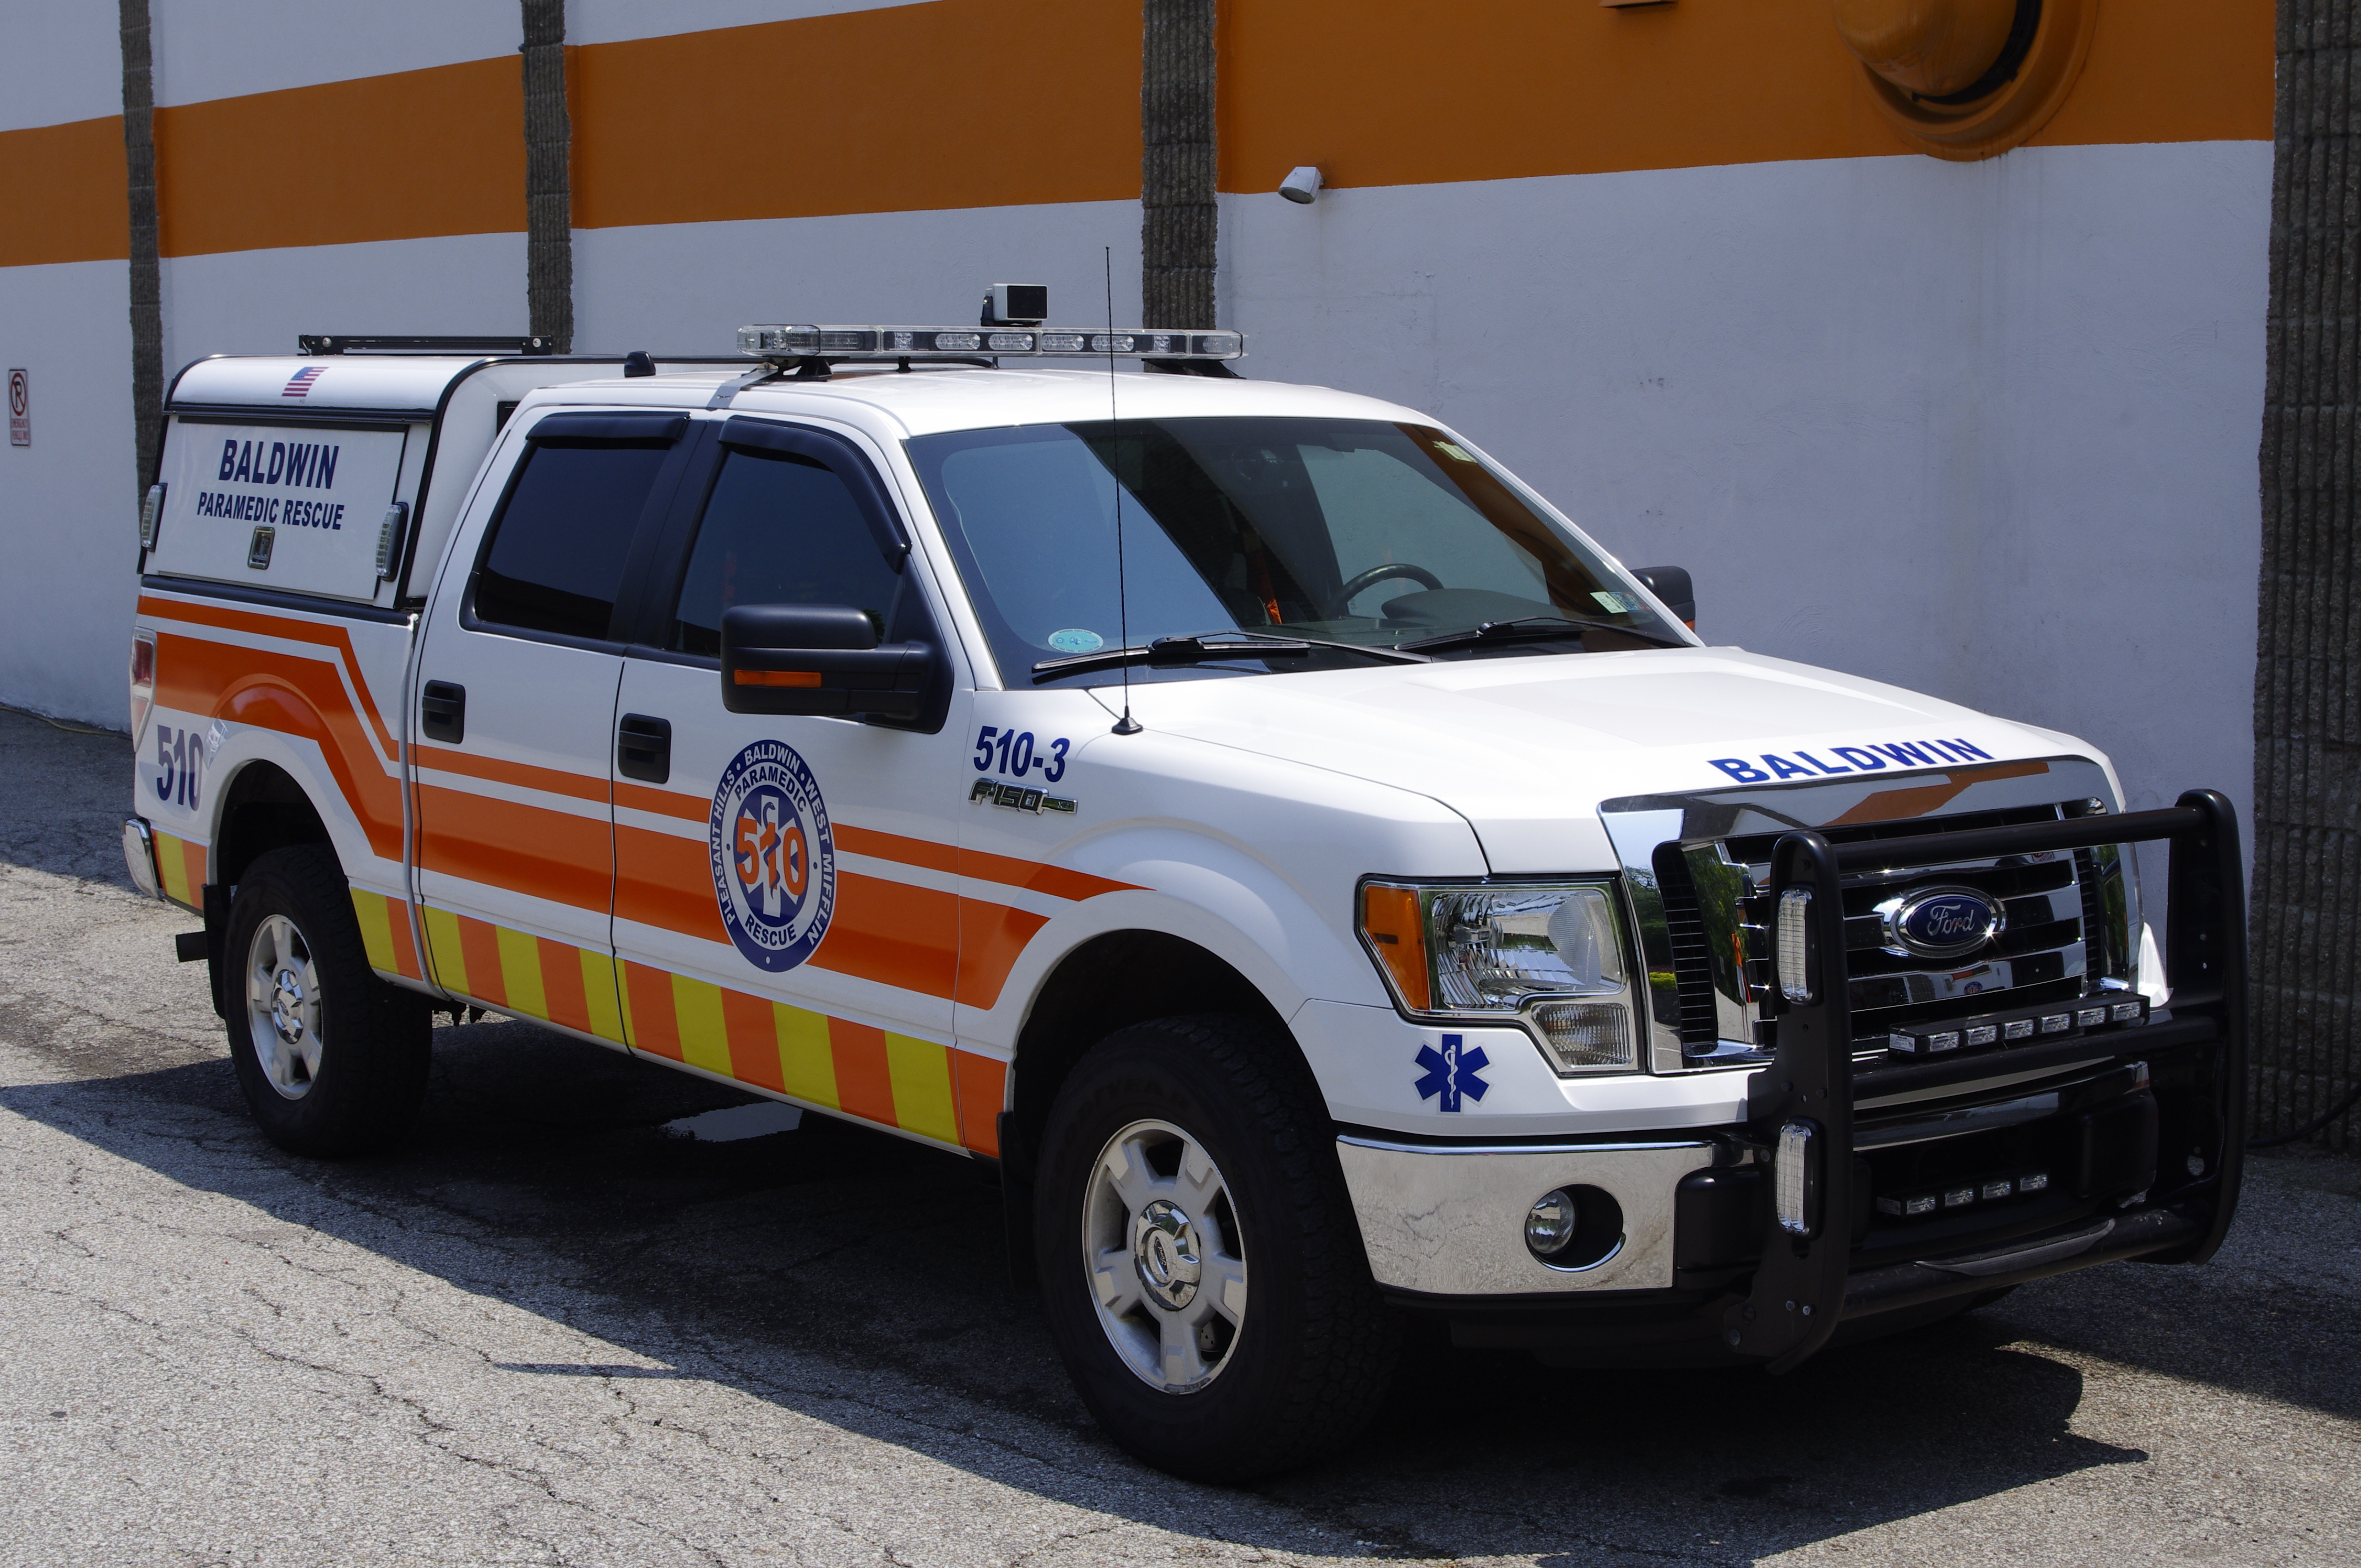 Squad 510-3 -2012 Ford F150 Pickup